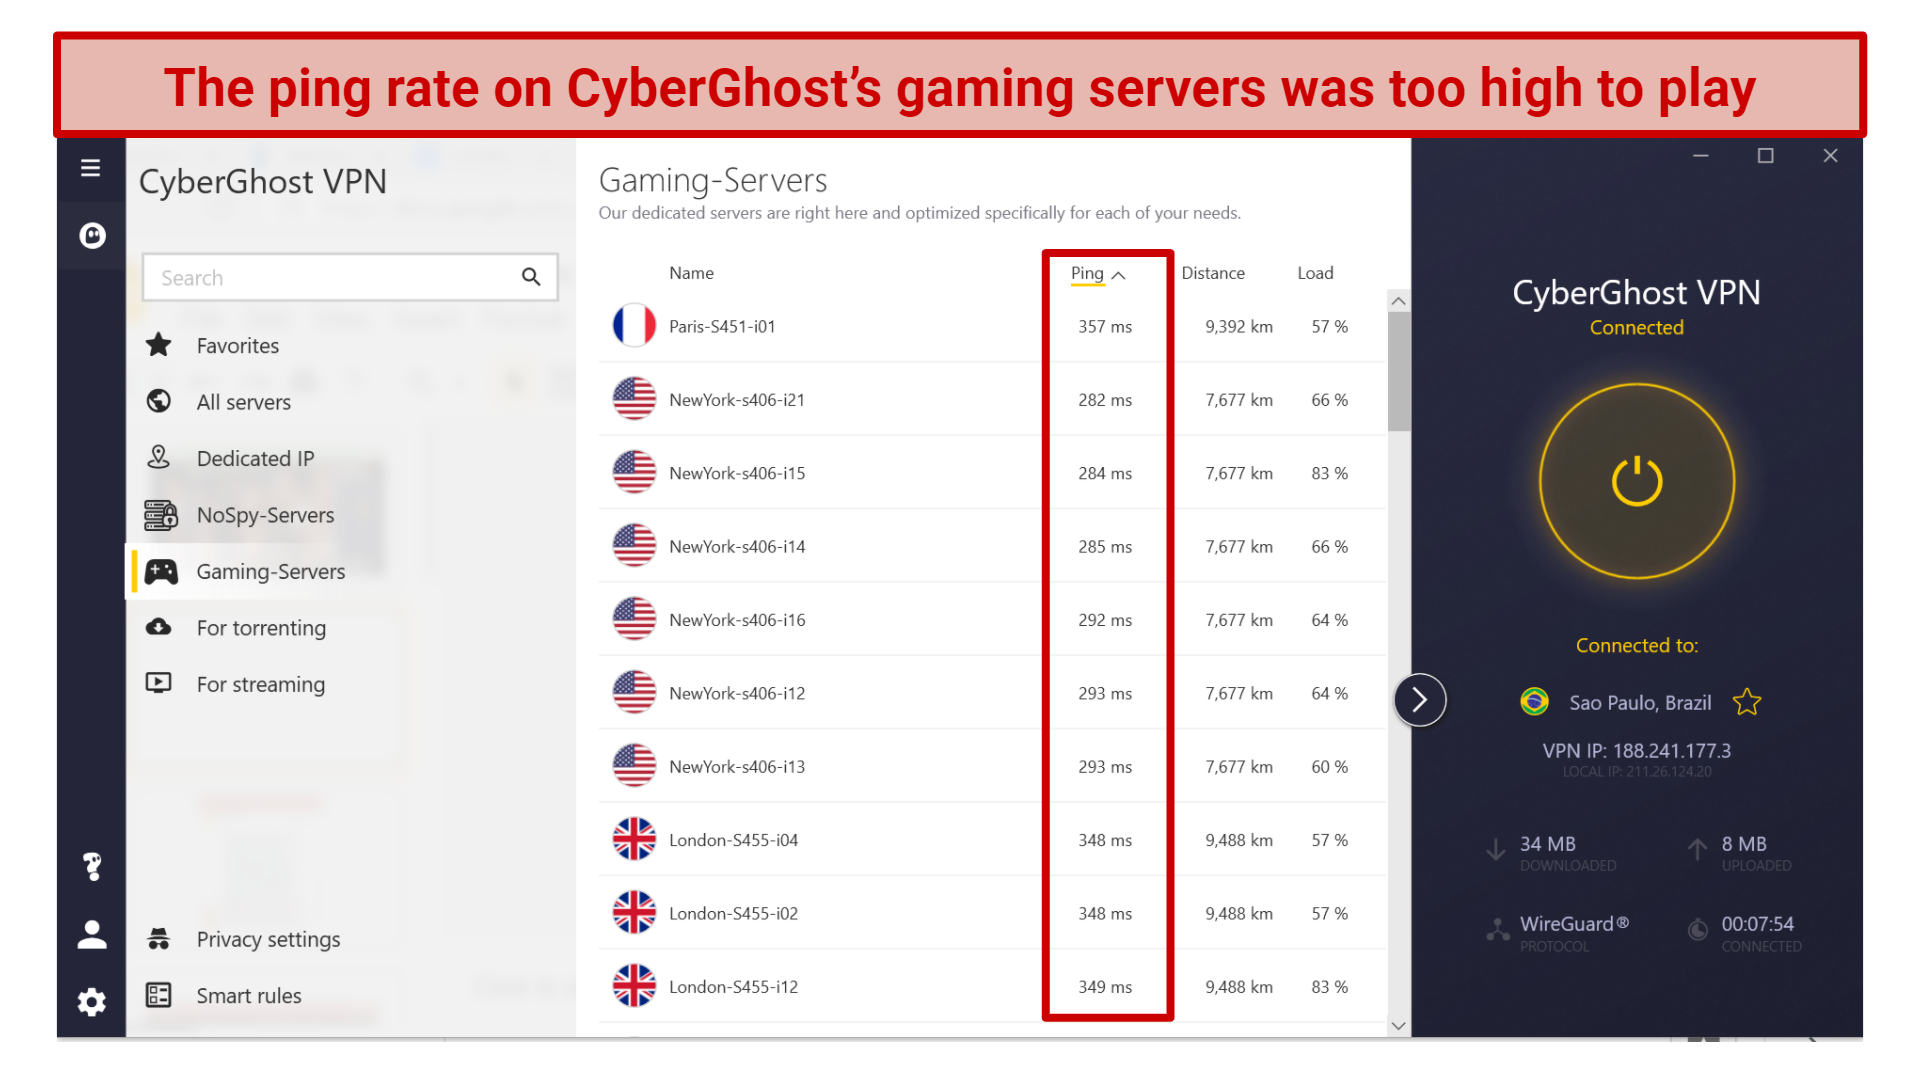 A screenshot of CyberGhost's gaming servers showing a high ping rate.